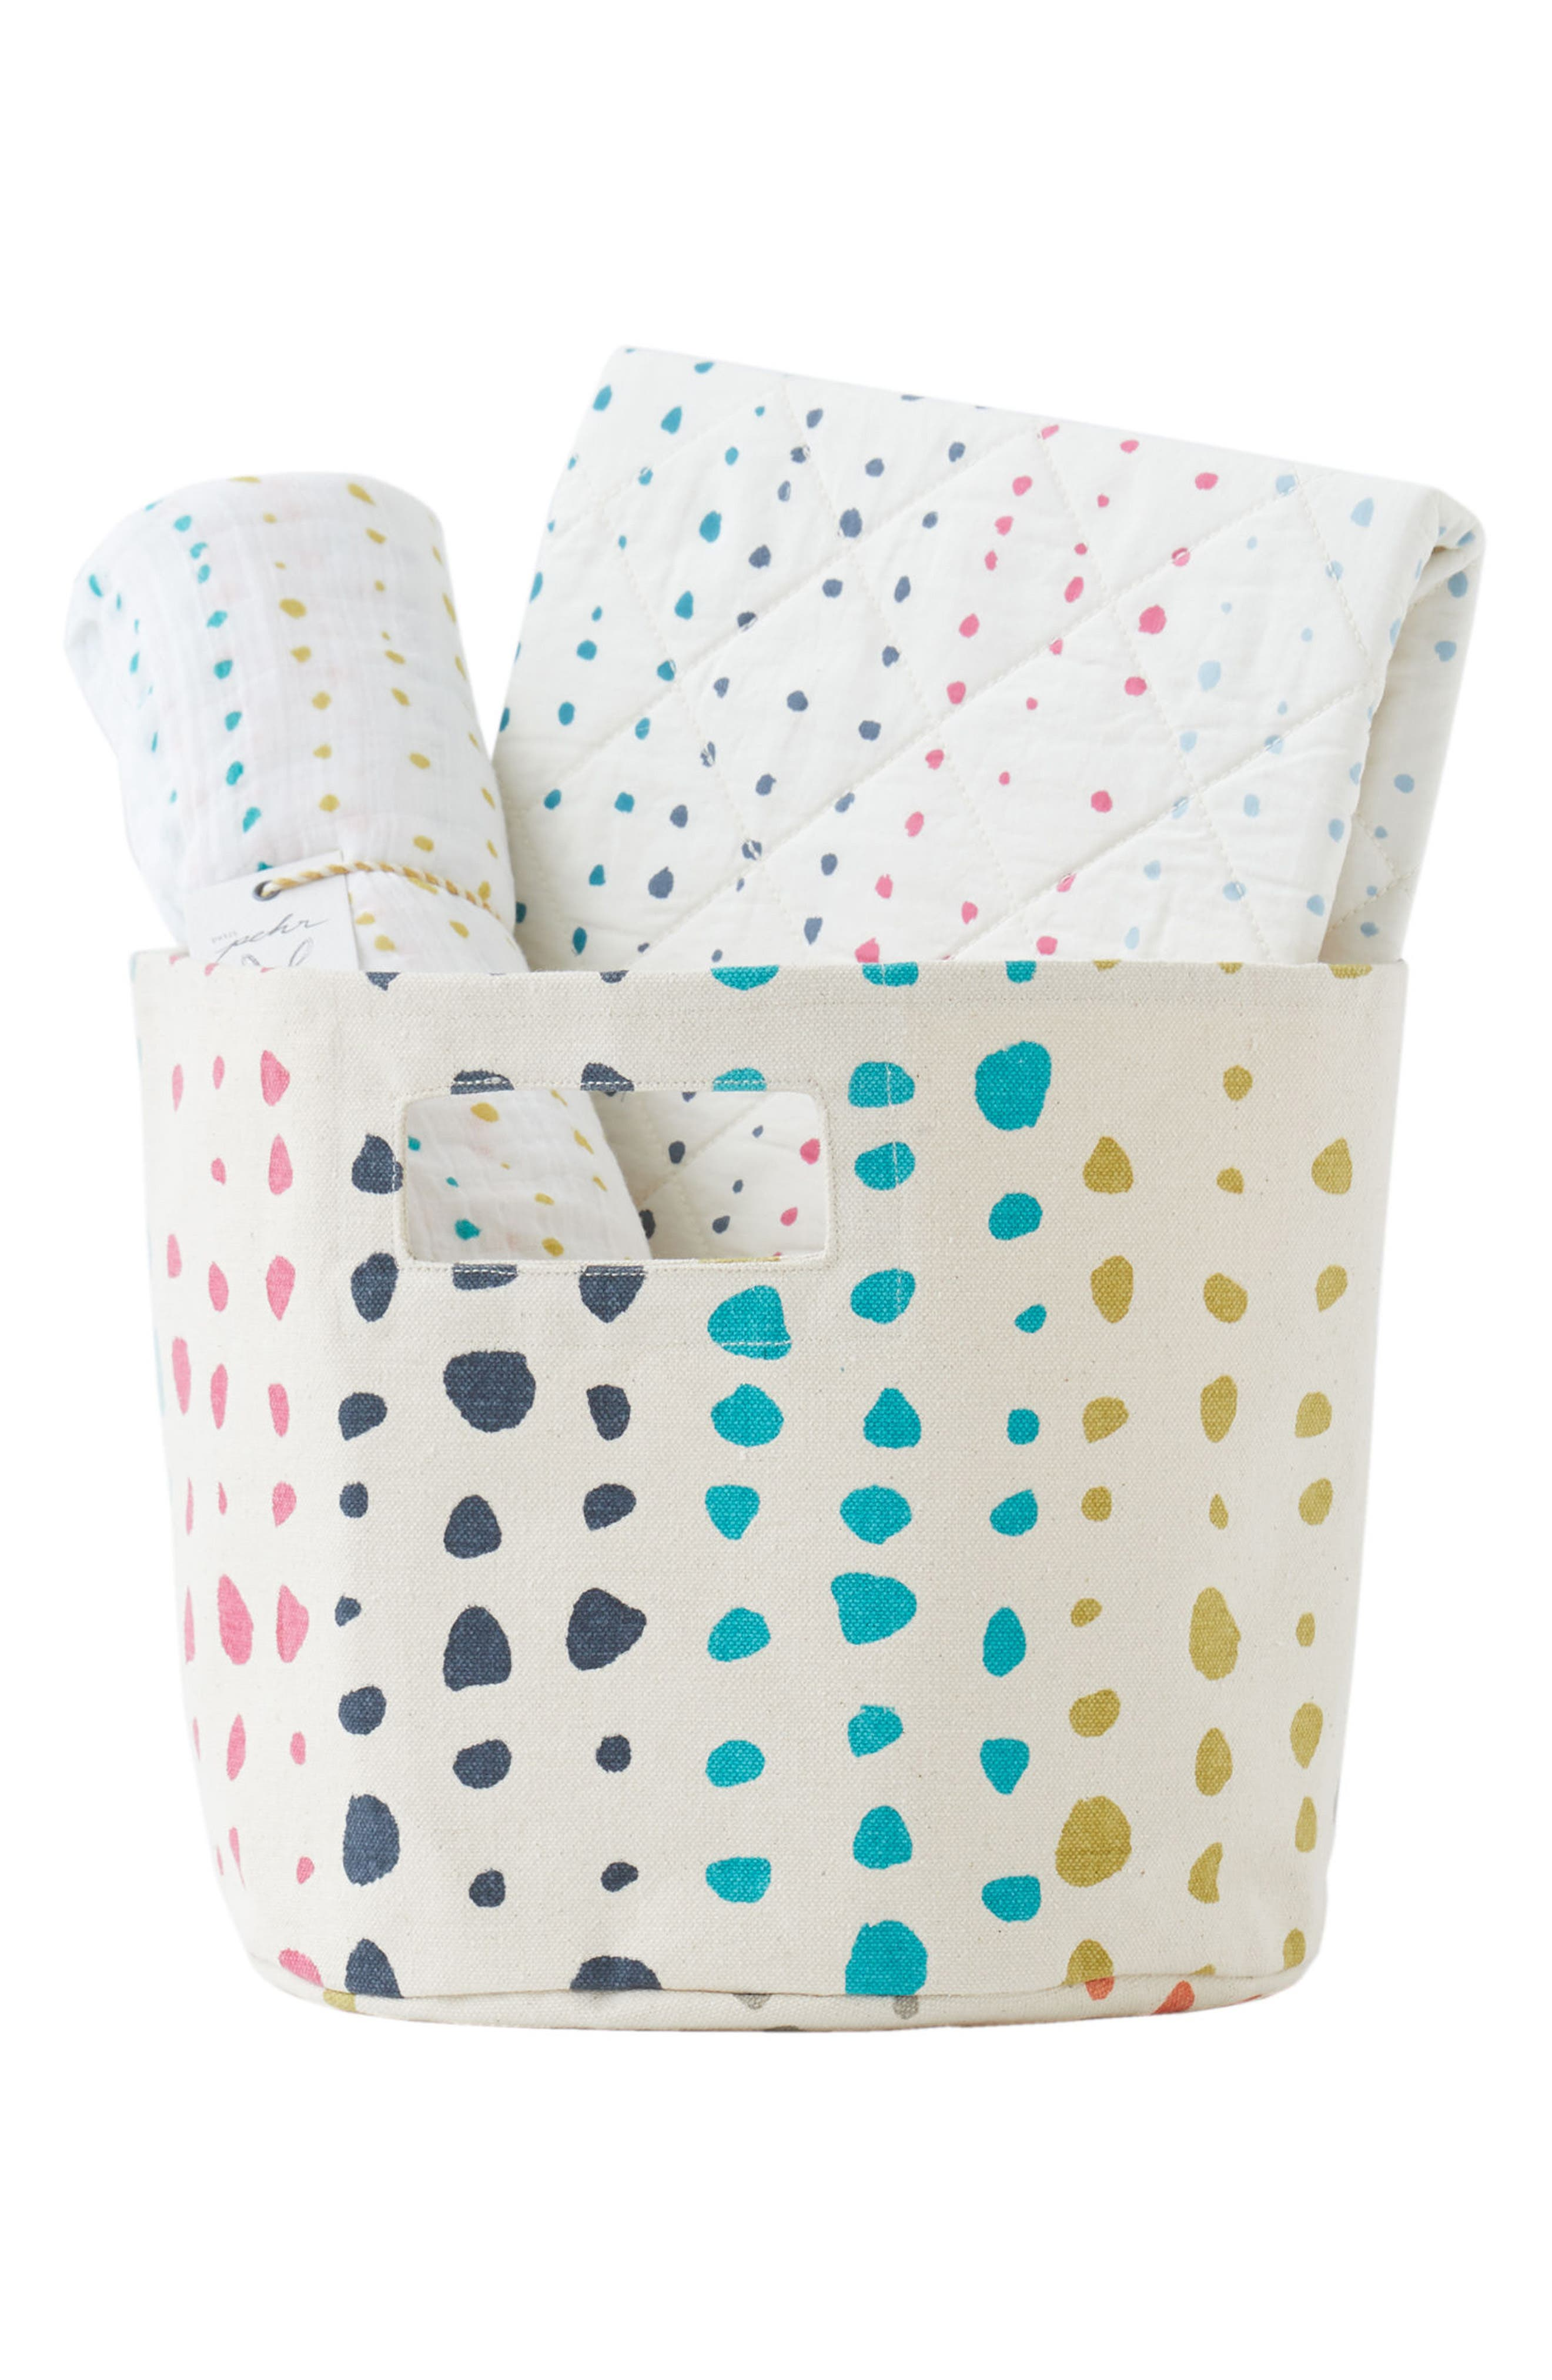 Painted Dots Changing Pad Cover, Swaddle & Bin Set,                             Main thumbnail 1, color,                             Multi